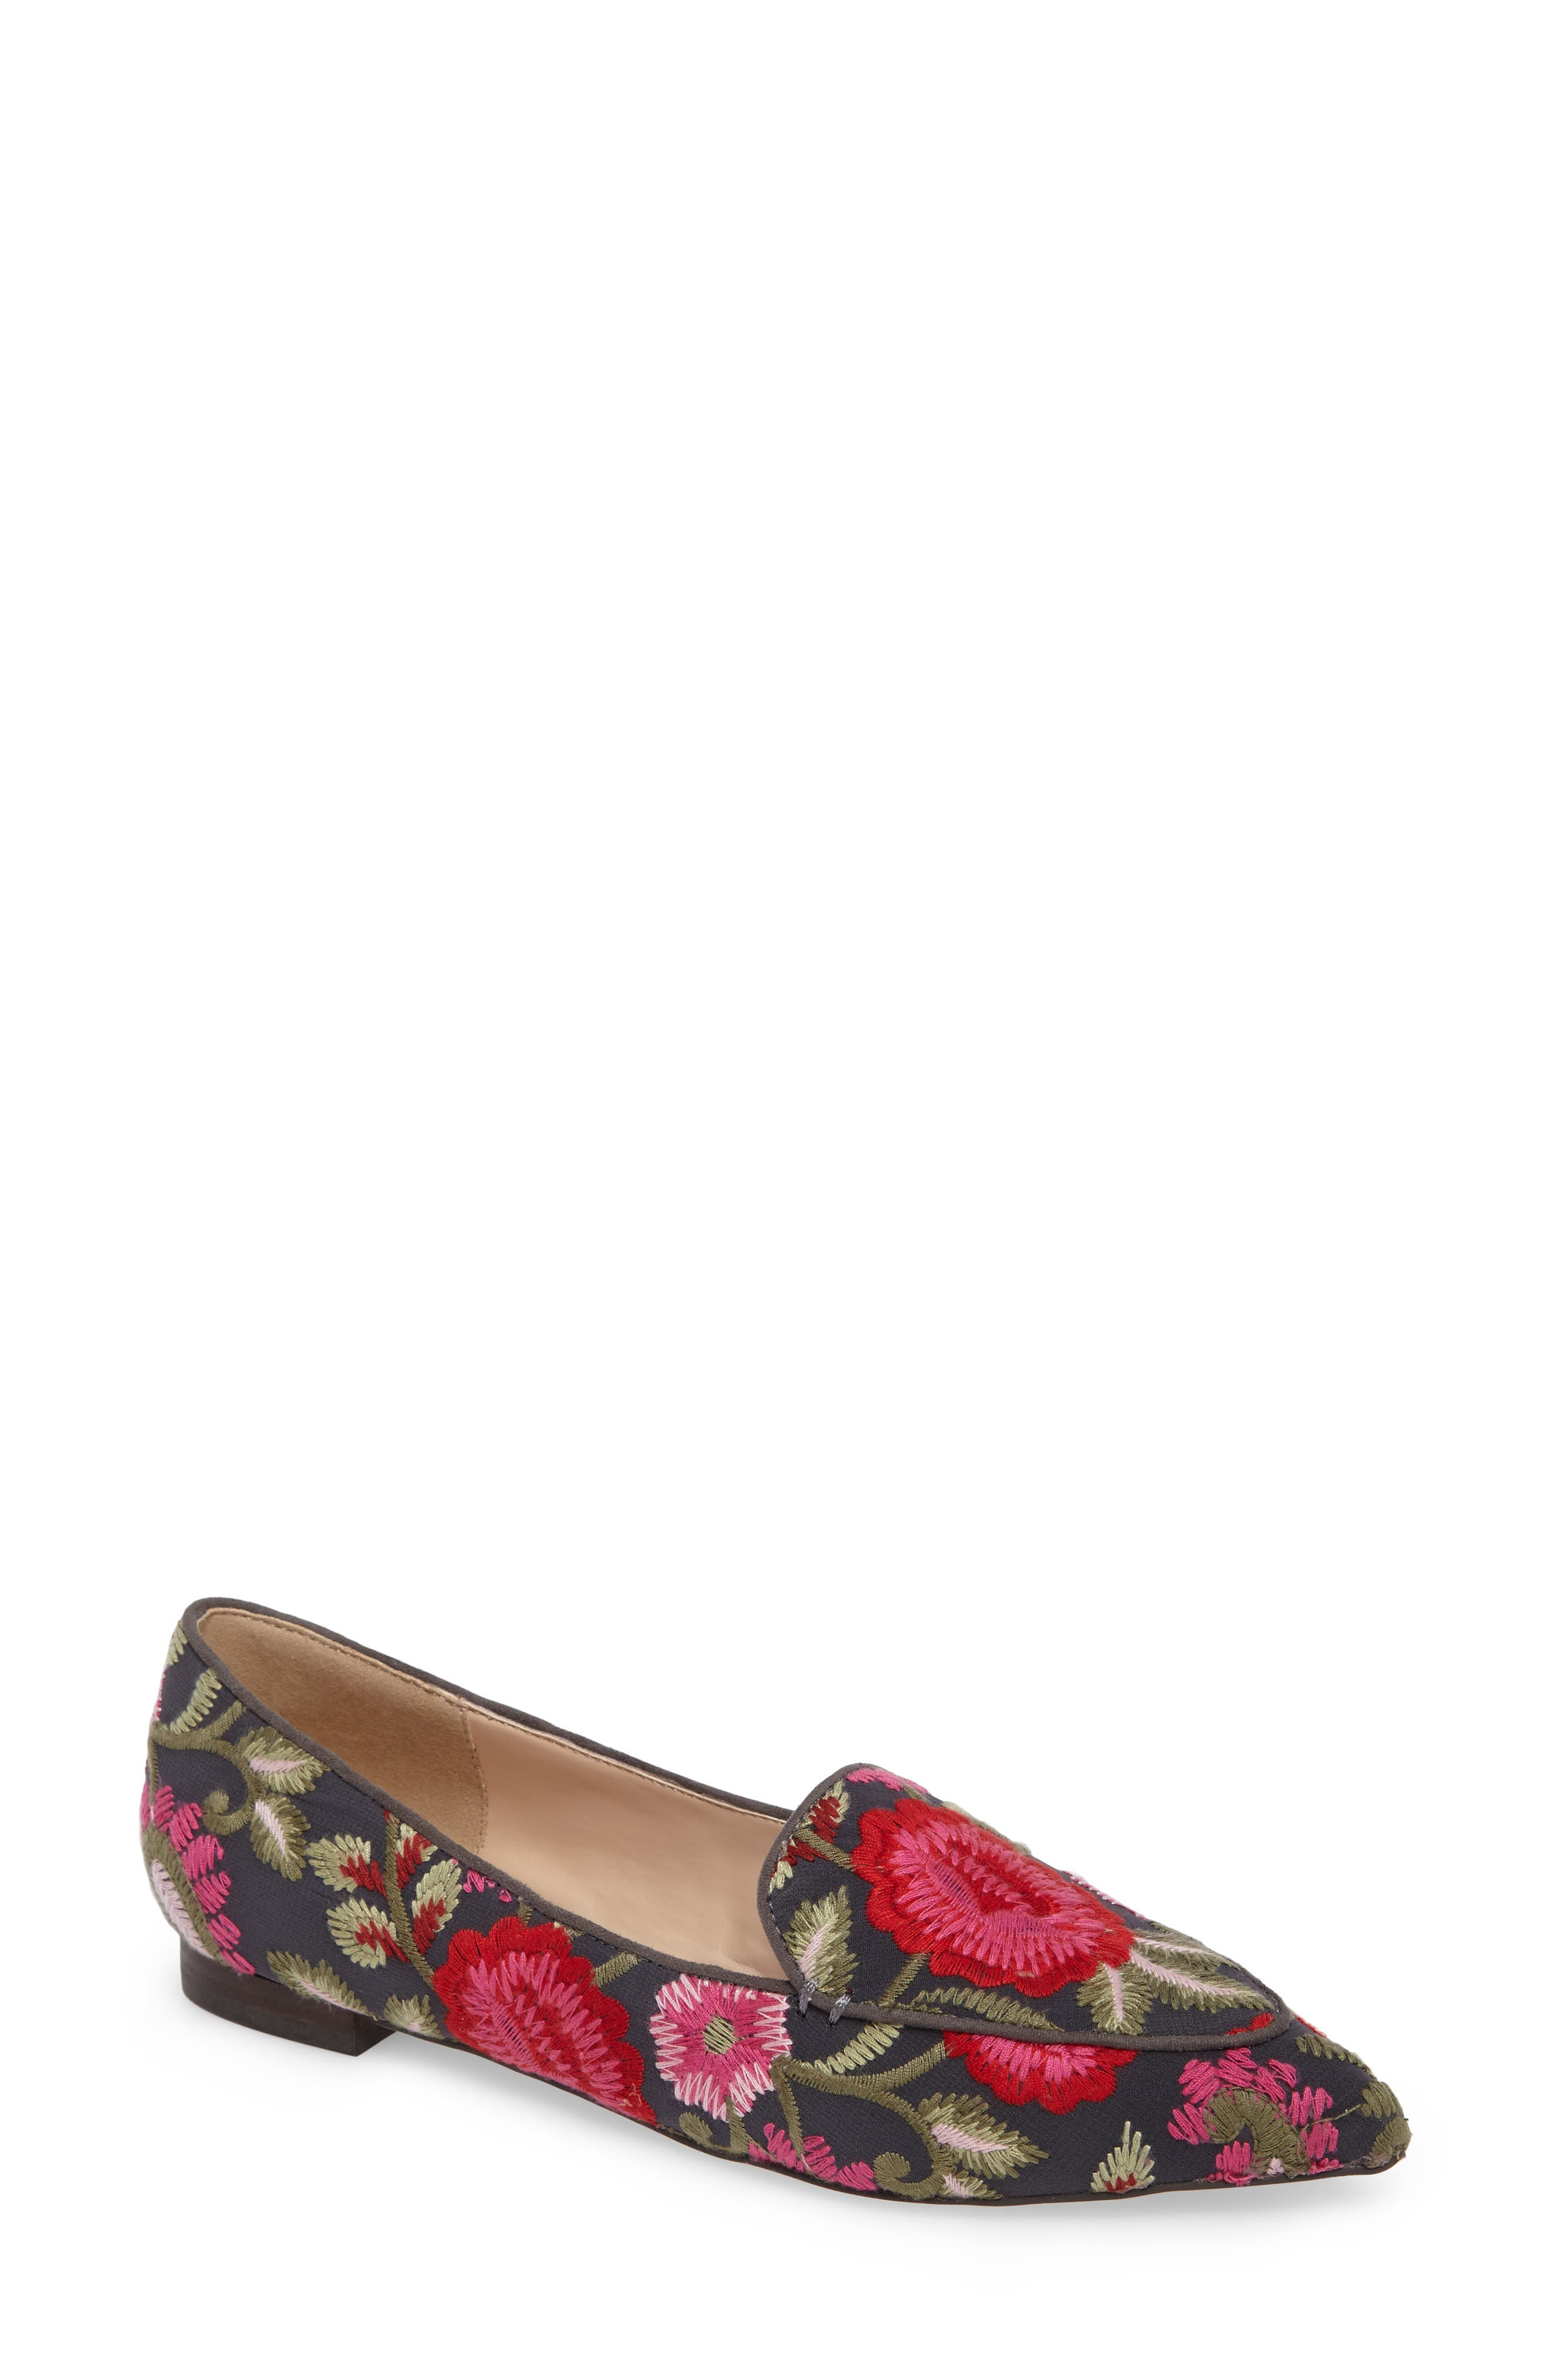 'Cammila' Pointy Toe Loafer,                             Main thumbnail 5, color,